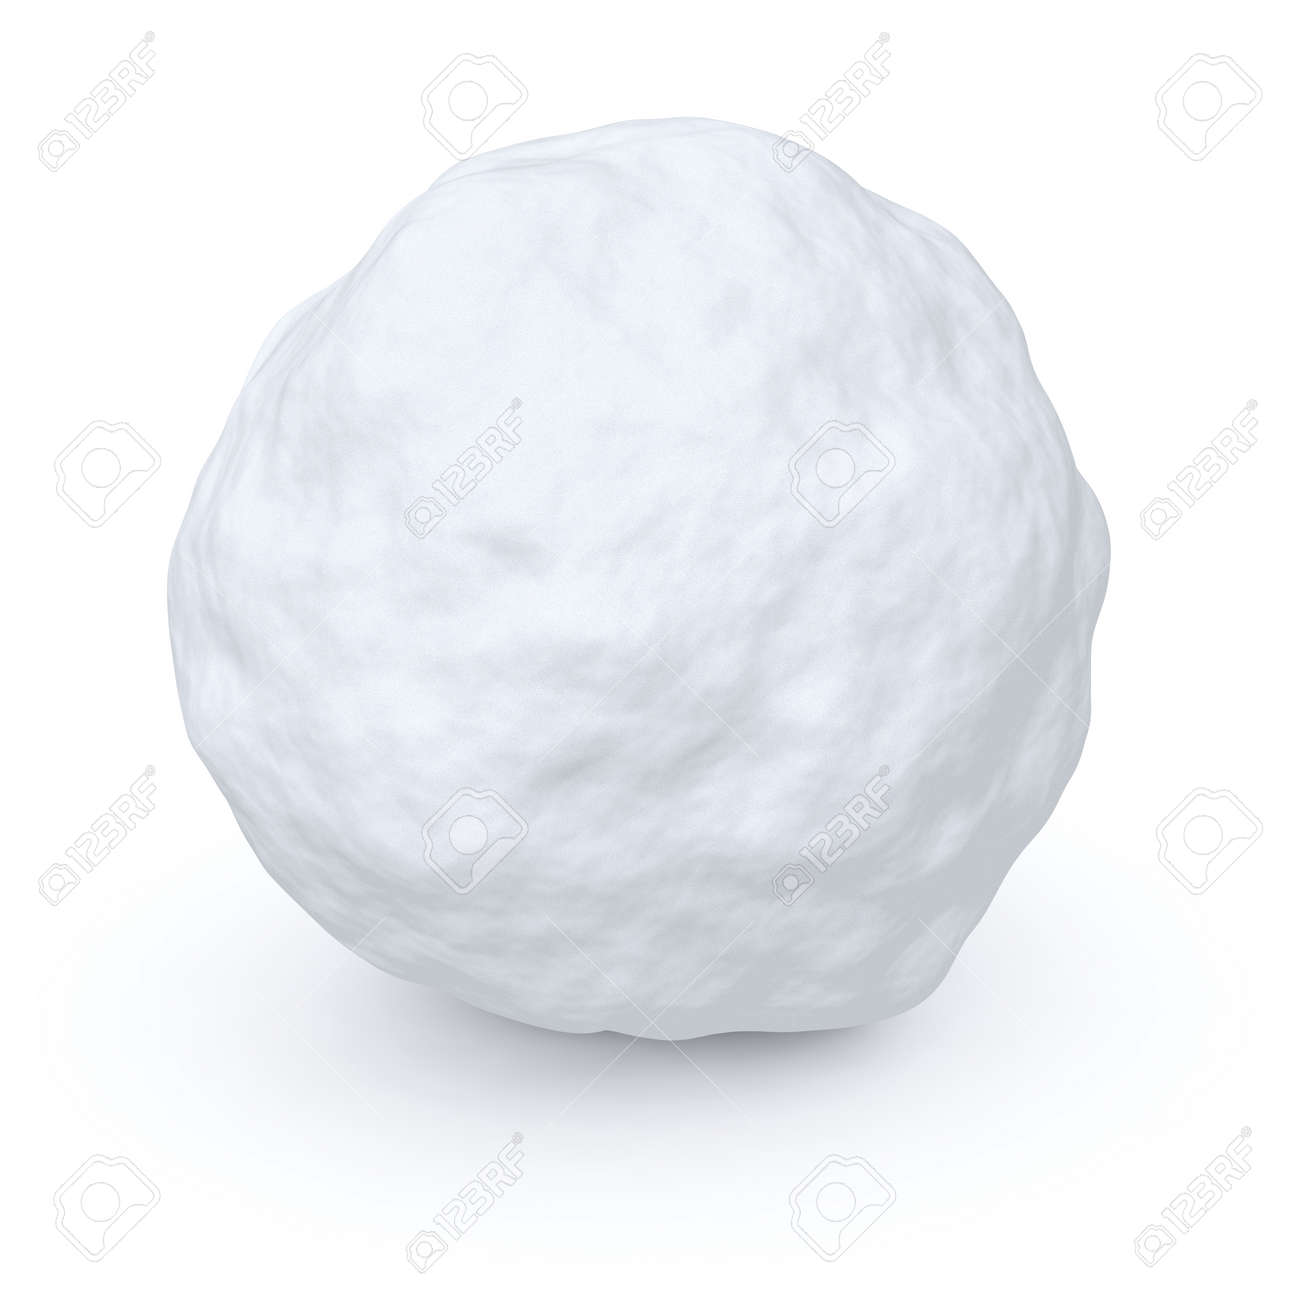 One snowball isolated on white background - 33886400